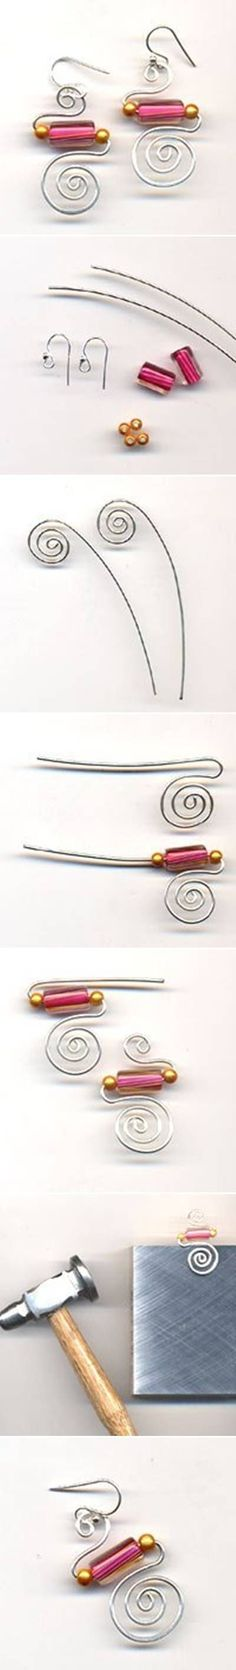 DIY Simple Stylish Wire Earrings DIY Projects | UsefulDIY.com Follow Us on Facebook ==> http://www.facebook.com/UsefulDiy